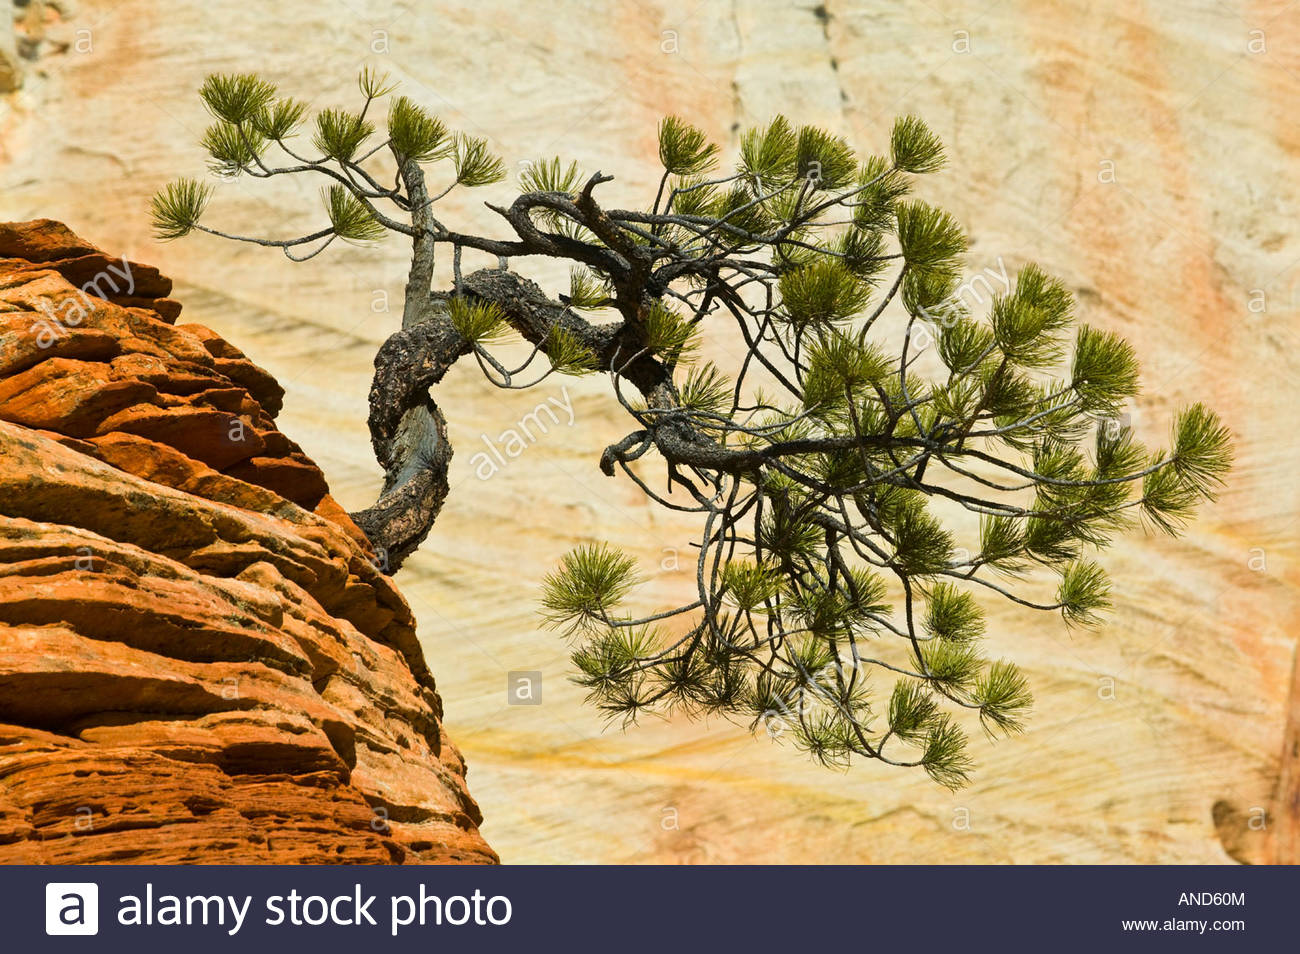 A bent pine tree grows near the top of a sandstone column in Zion National Park, Utah. - Stock Image